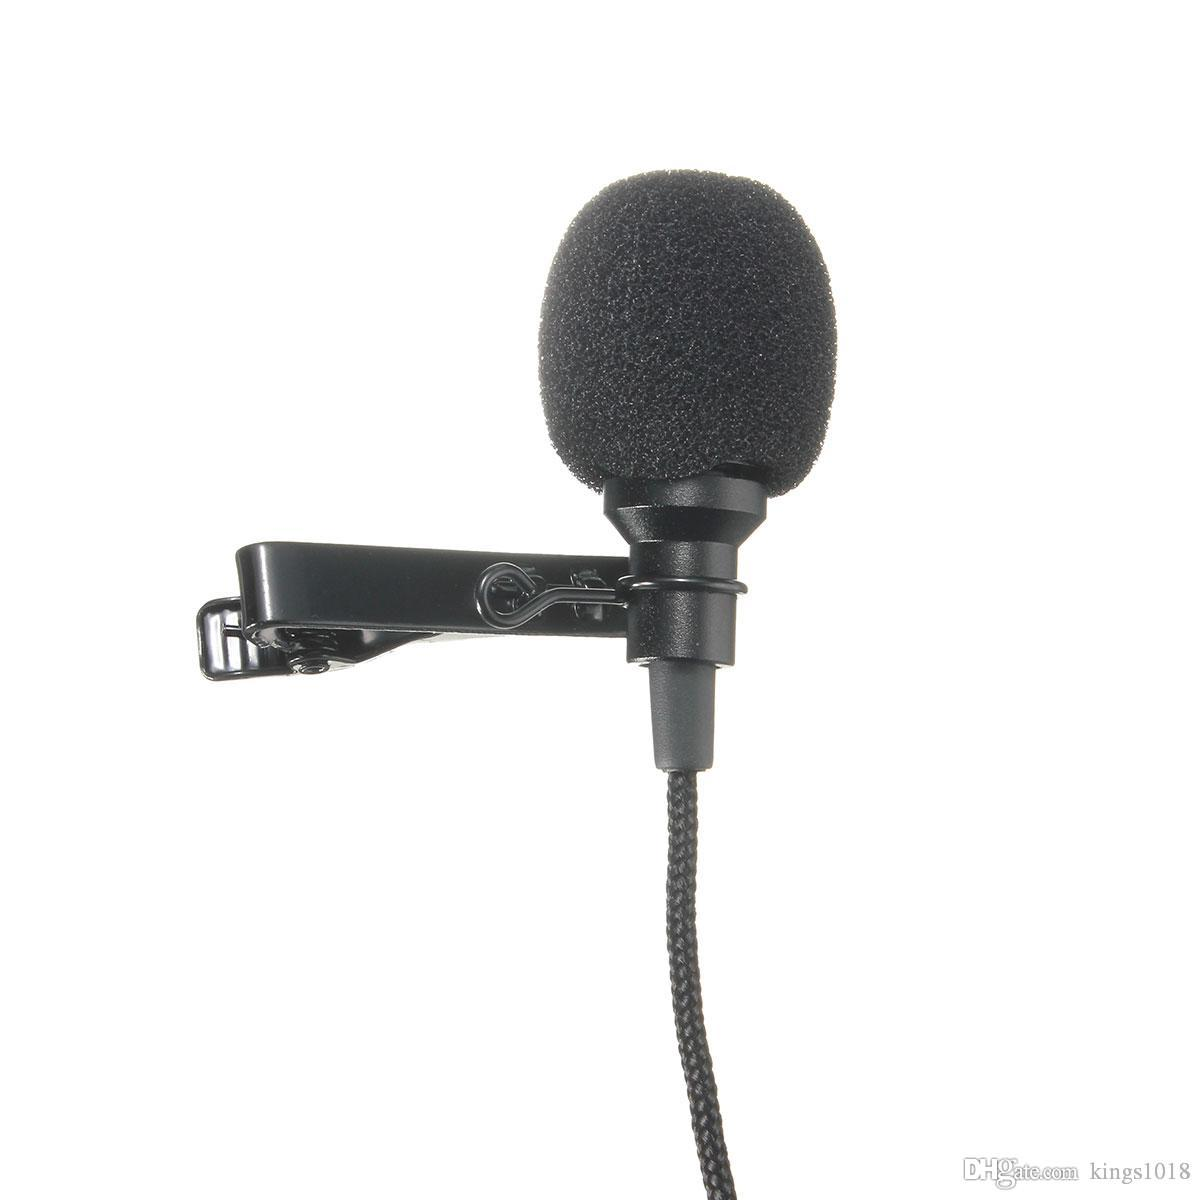 2019 hot sale Black Metal 3.5mm Jack Microphone Lavalier Tie Clip Microphones Microfono Mini Mic For Speaking Speech Lectures 2.4m Cable